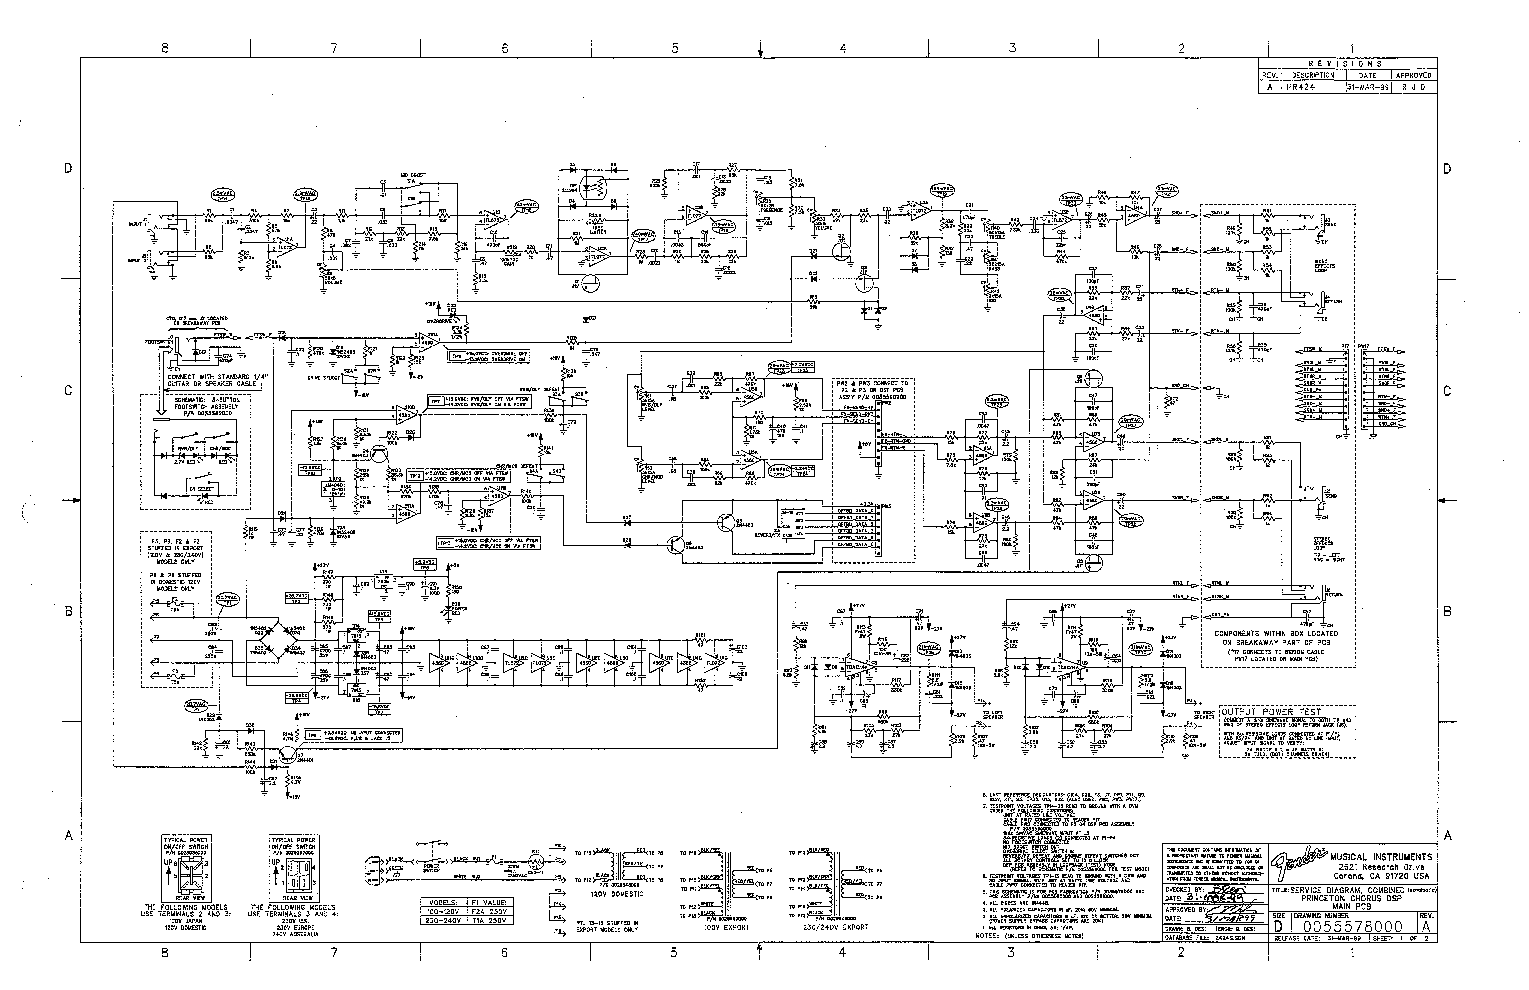 FENDER PRINCETON-CHORUS-DSP SCH Service Manual download, schematics on fender super reverb schematic, fender ultimate chorus specs, fender princeton 650 schematic, fender power chorus schematic, fender princeton 112 schematic, roland jazz chorus schematic, fender frontman 15g schematic, fender amp manuals, fender pro reverb schematic, fender deluxe 85 schematic, fender frontman 25r schematic, fender blues deluxe schematic, fender the twin schematic, princeton reverb schematic, fender princeton 65 schematic, fender hot rod deville schematic, fender amp schematics, fender m 80 manual, fender frontman 212r schematic, fender champ schematic aa764,